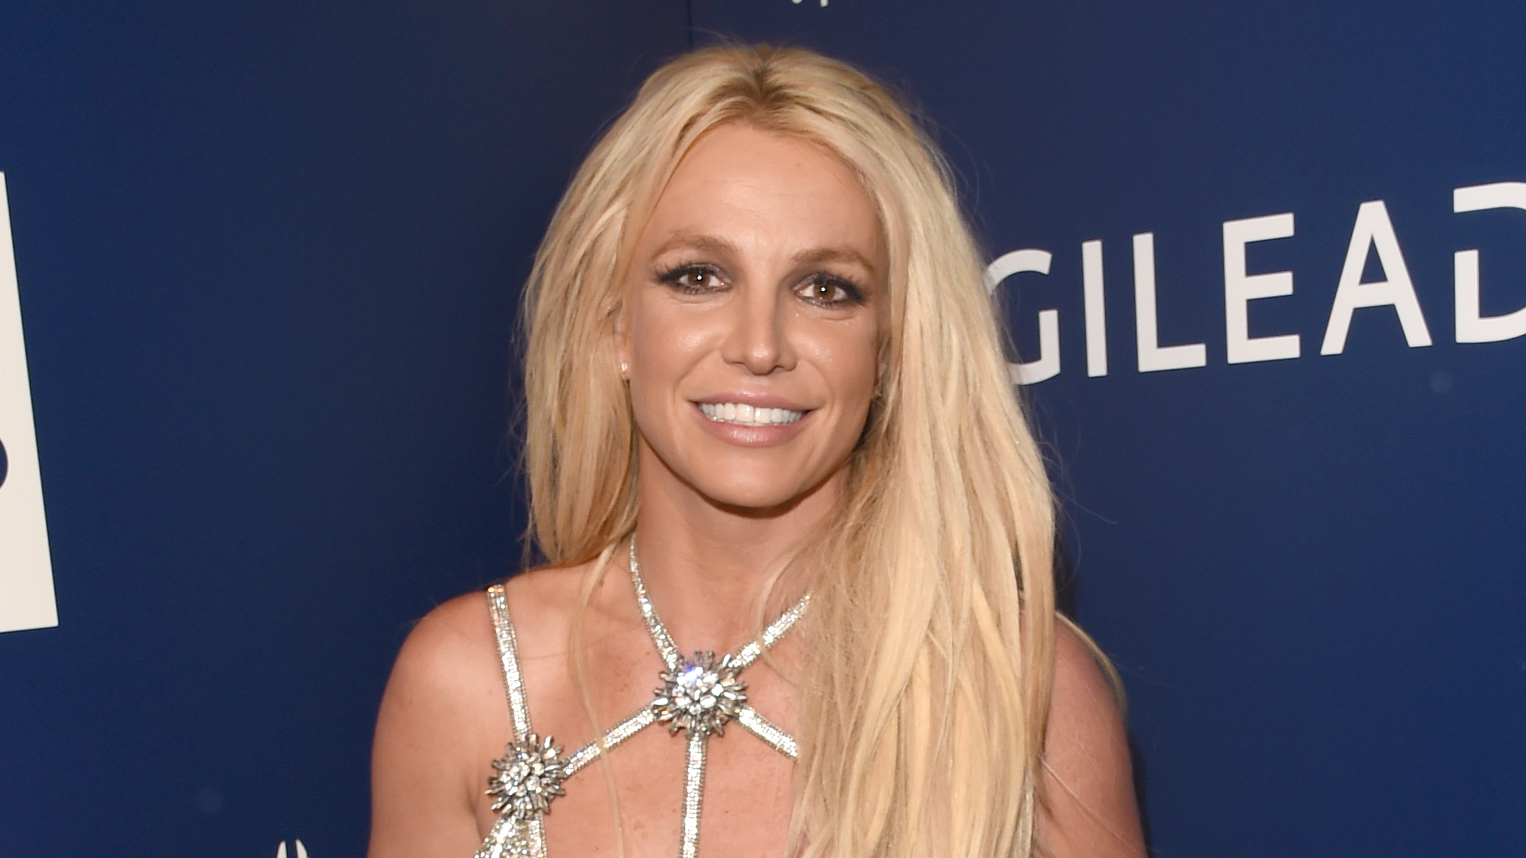 Britney Spears shows off Christmas decorations, asks fans not to 'say the meanest things'